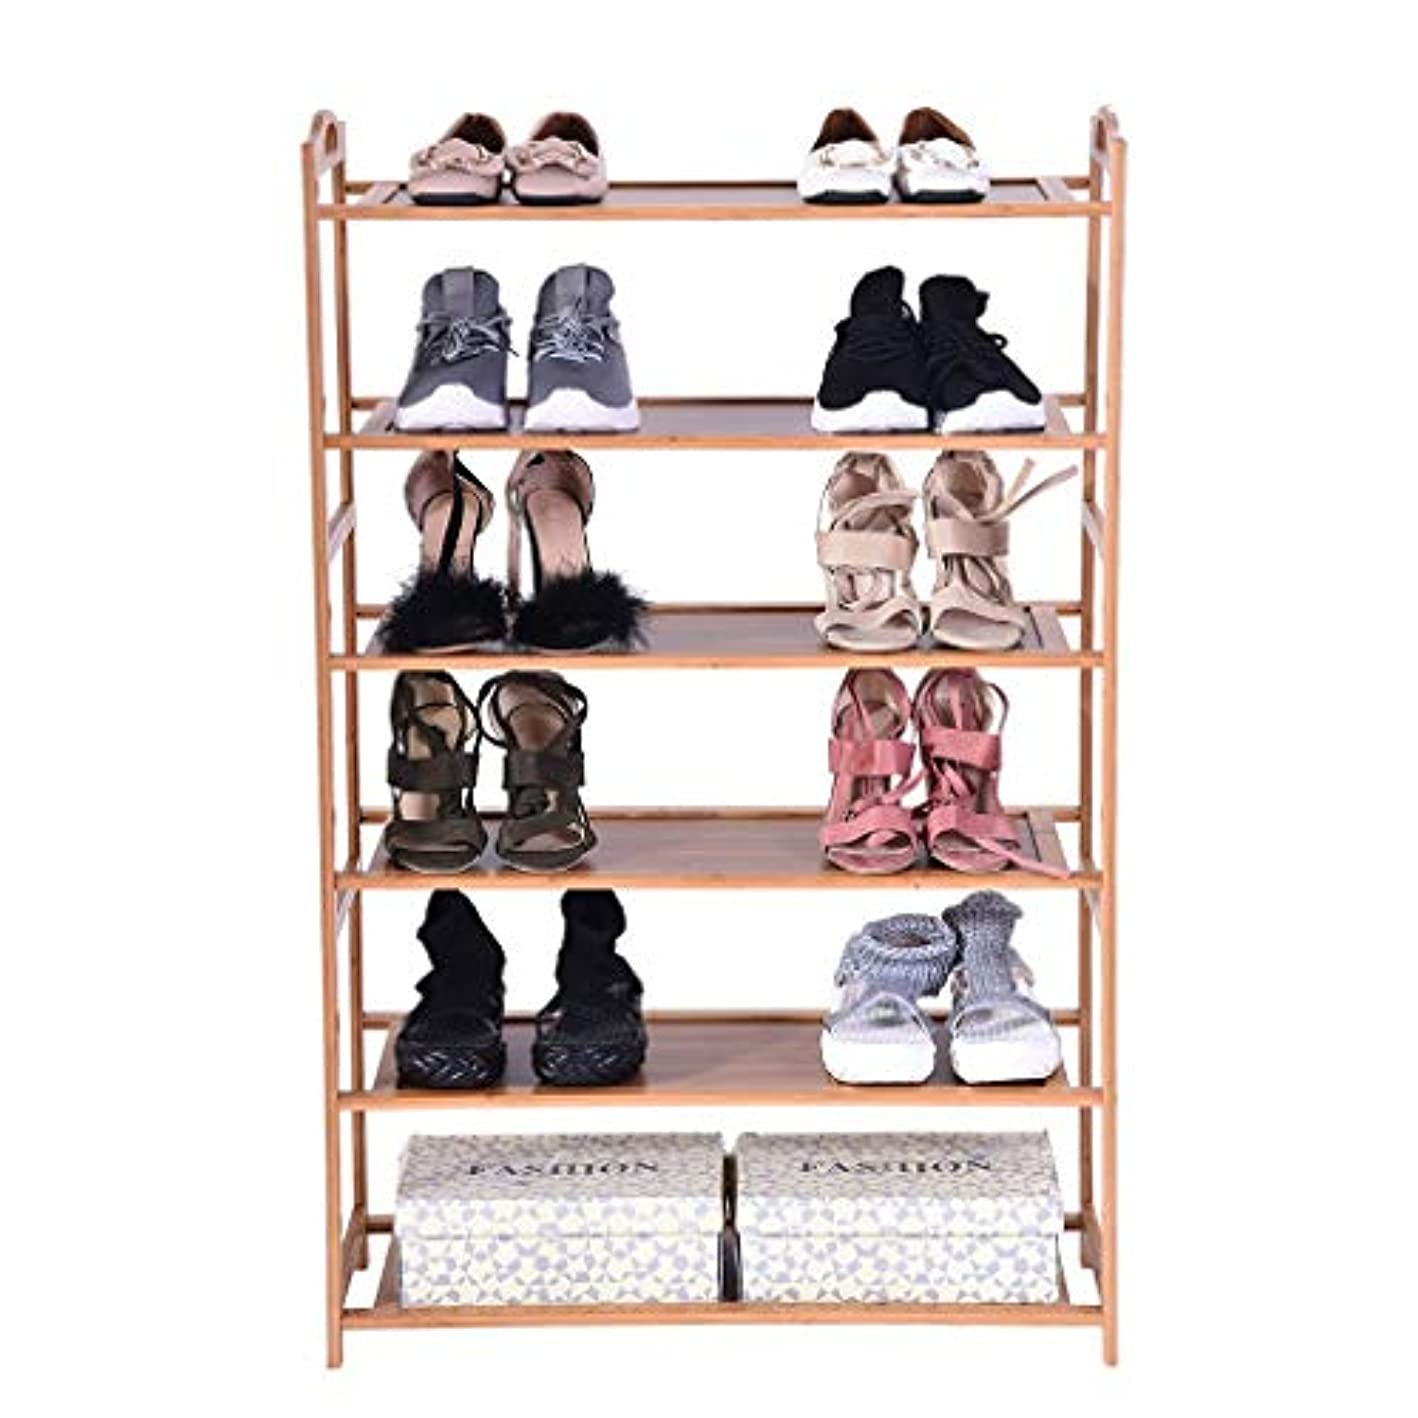 Ama-store Bamboo 6-Tier Shoe Rack Shoe Shelf Storage Organizer Holds Up to 18 Pairs,Ideal for Entryway Hallway Bathroom Garden, 27.2x9.8x41.7in Brown